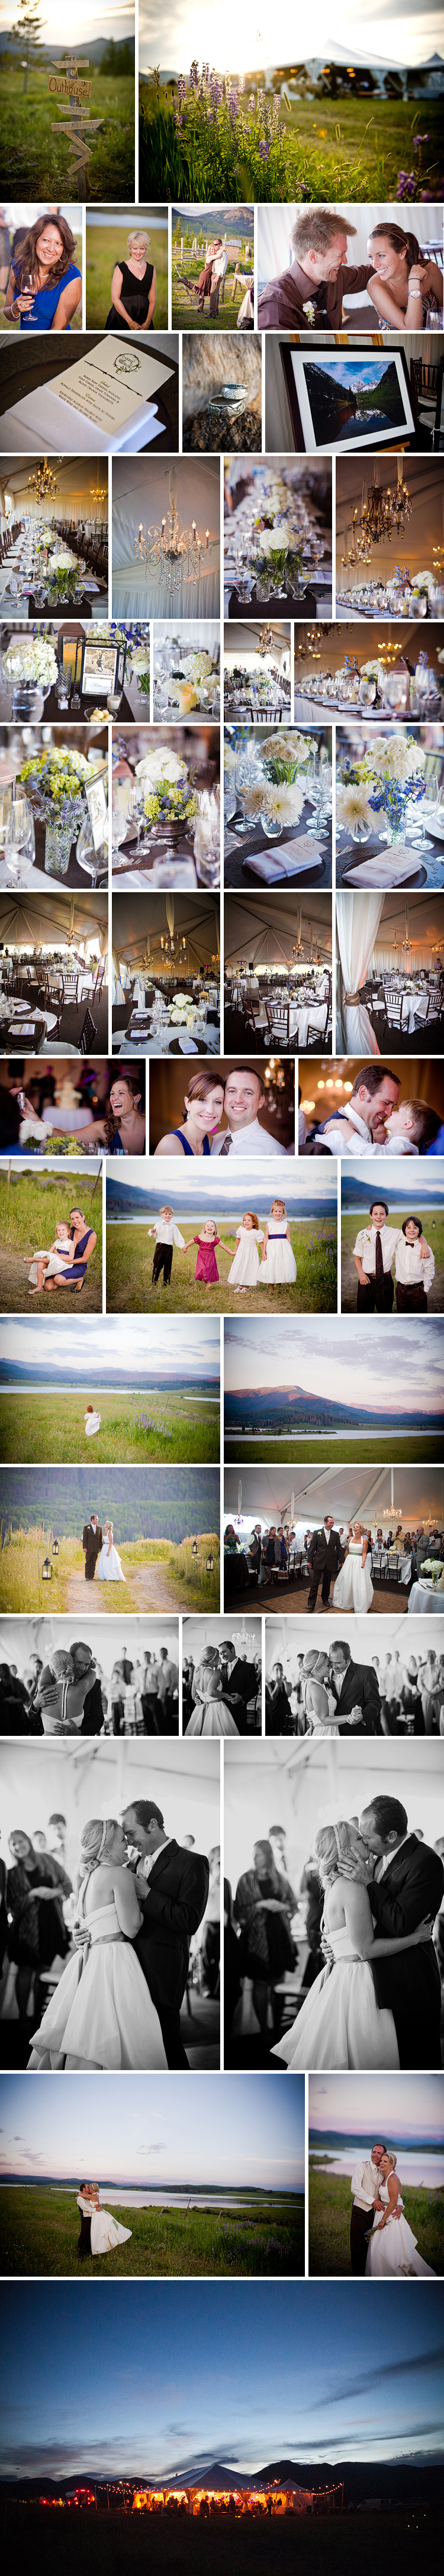 Steamboat Springs Wedding, Fetcher Ranch Wedding, Fetcher Barn Wedding